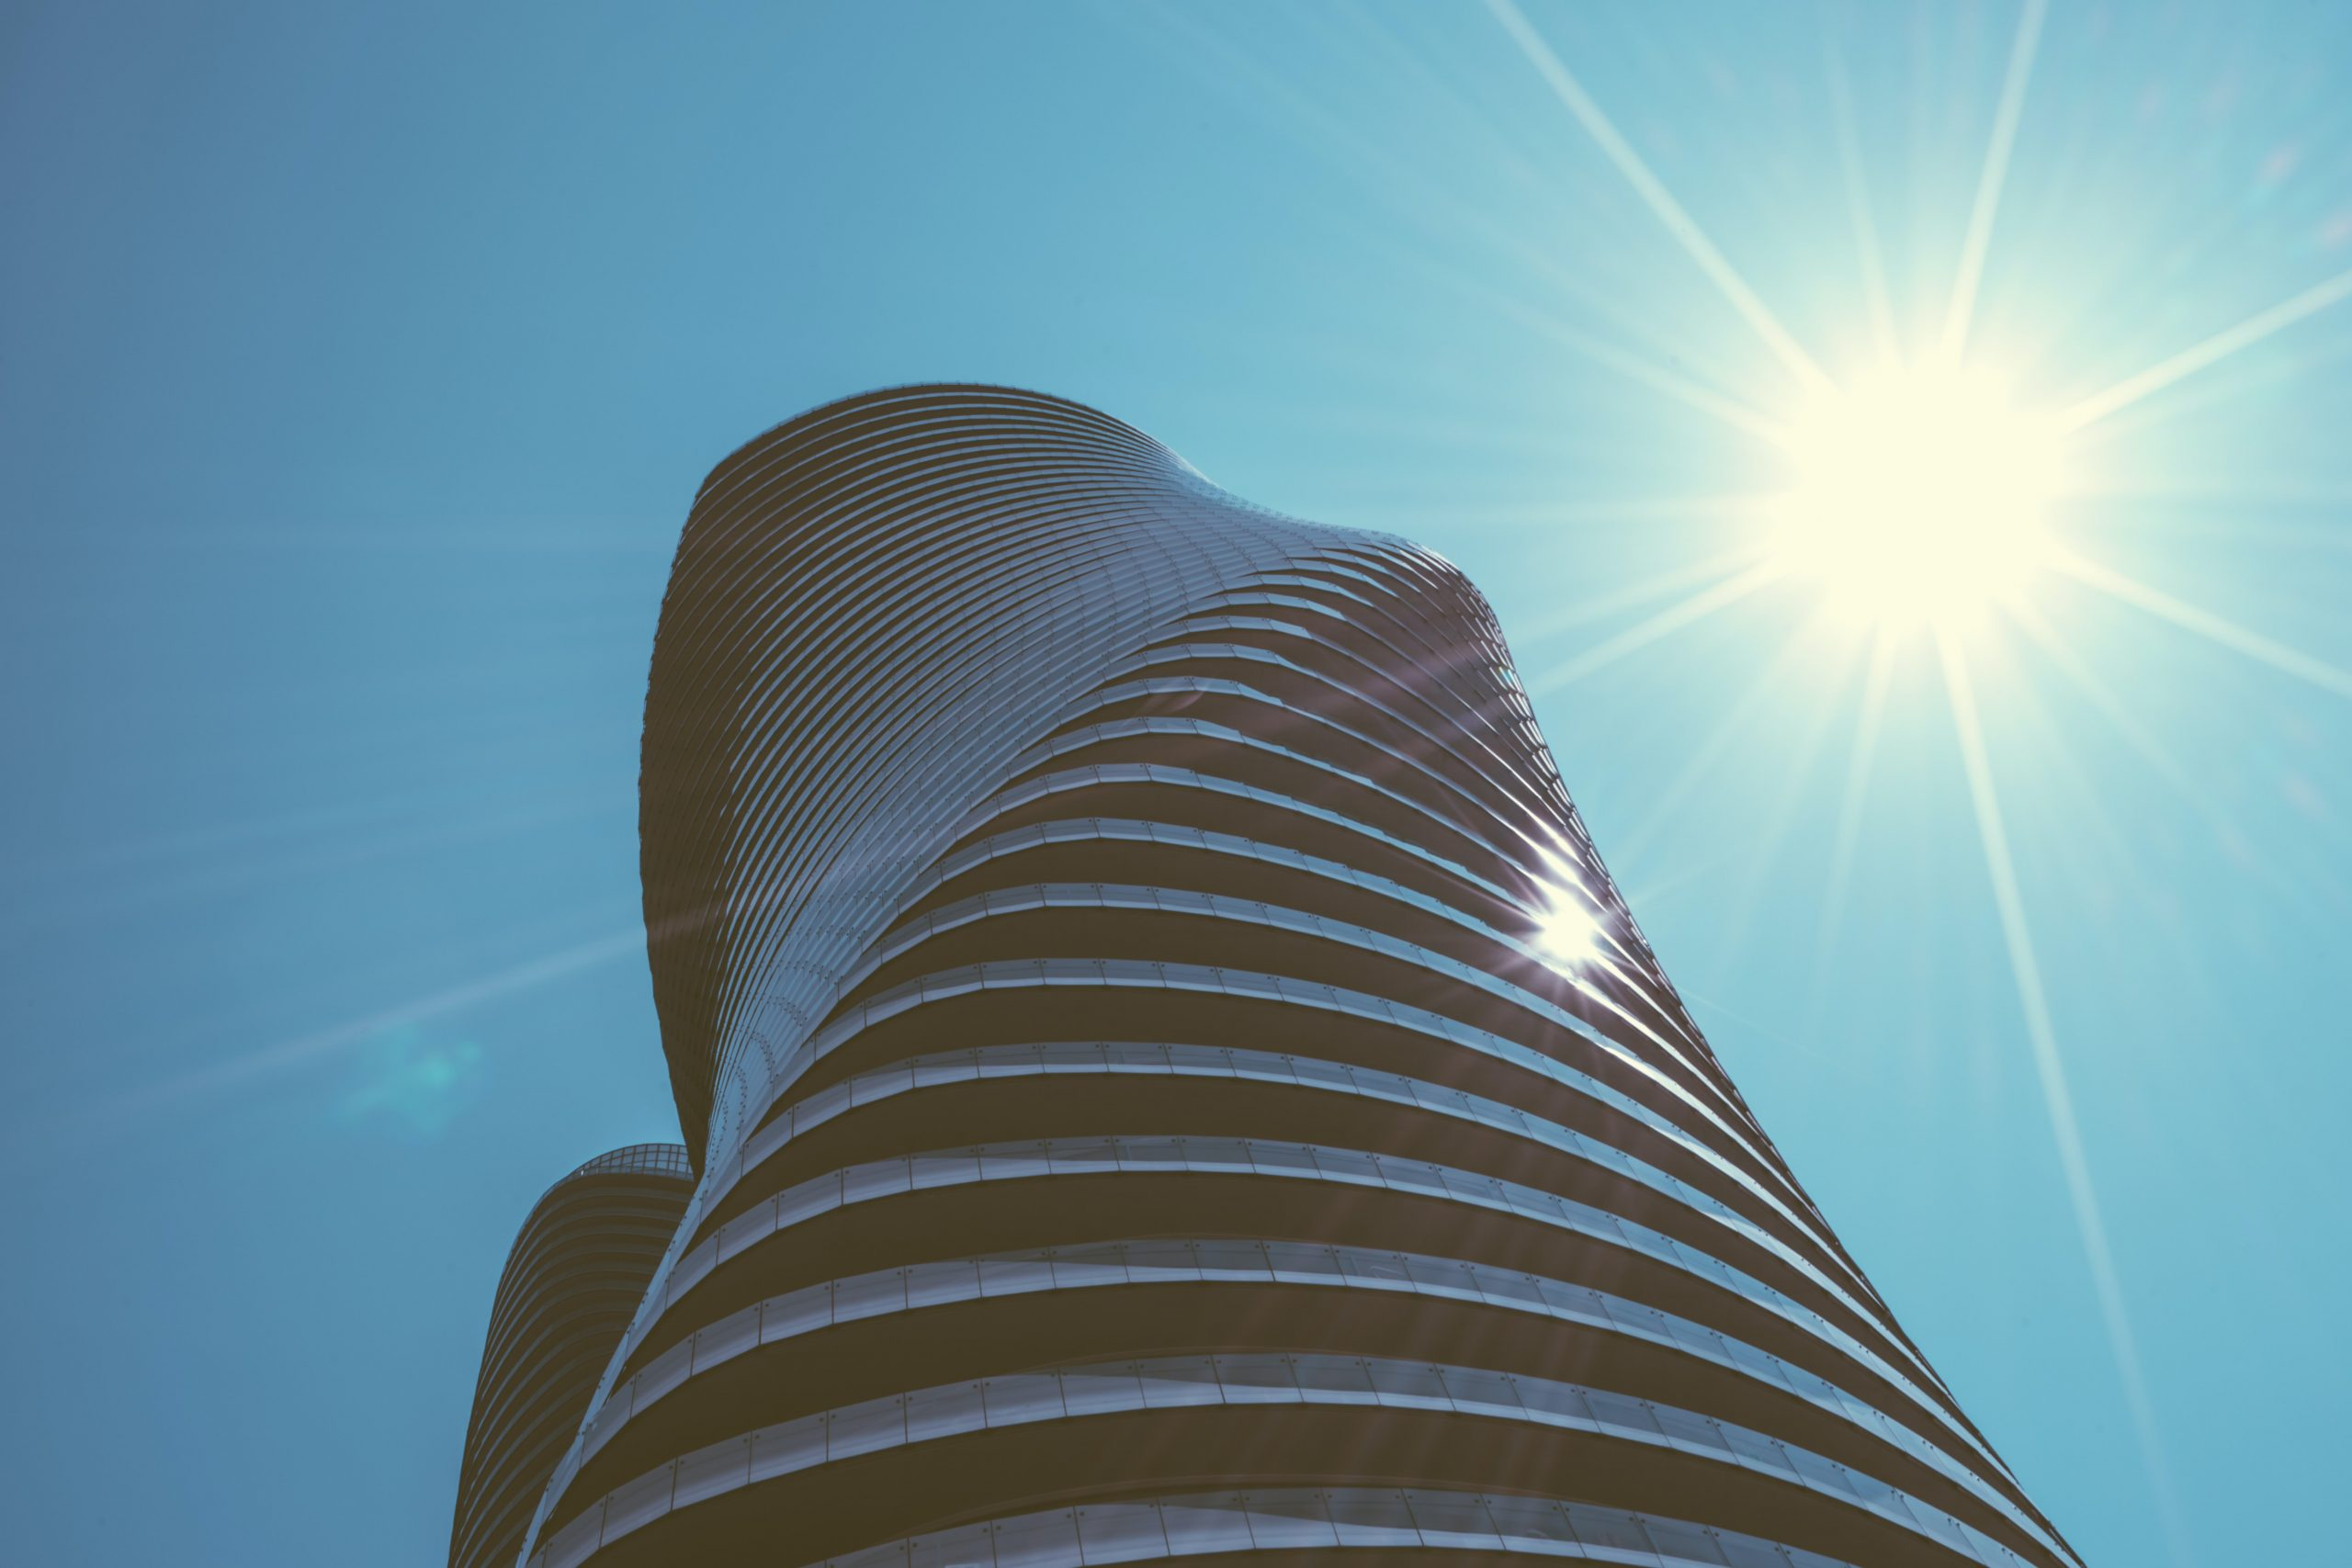 Absolute World towers in Mississauga